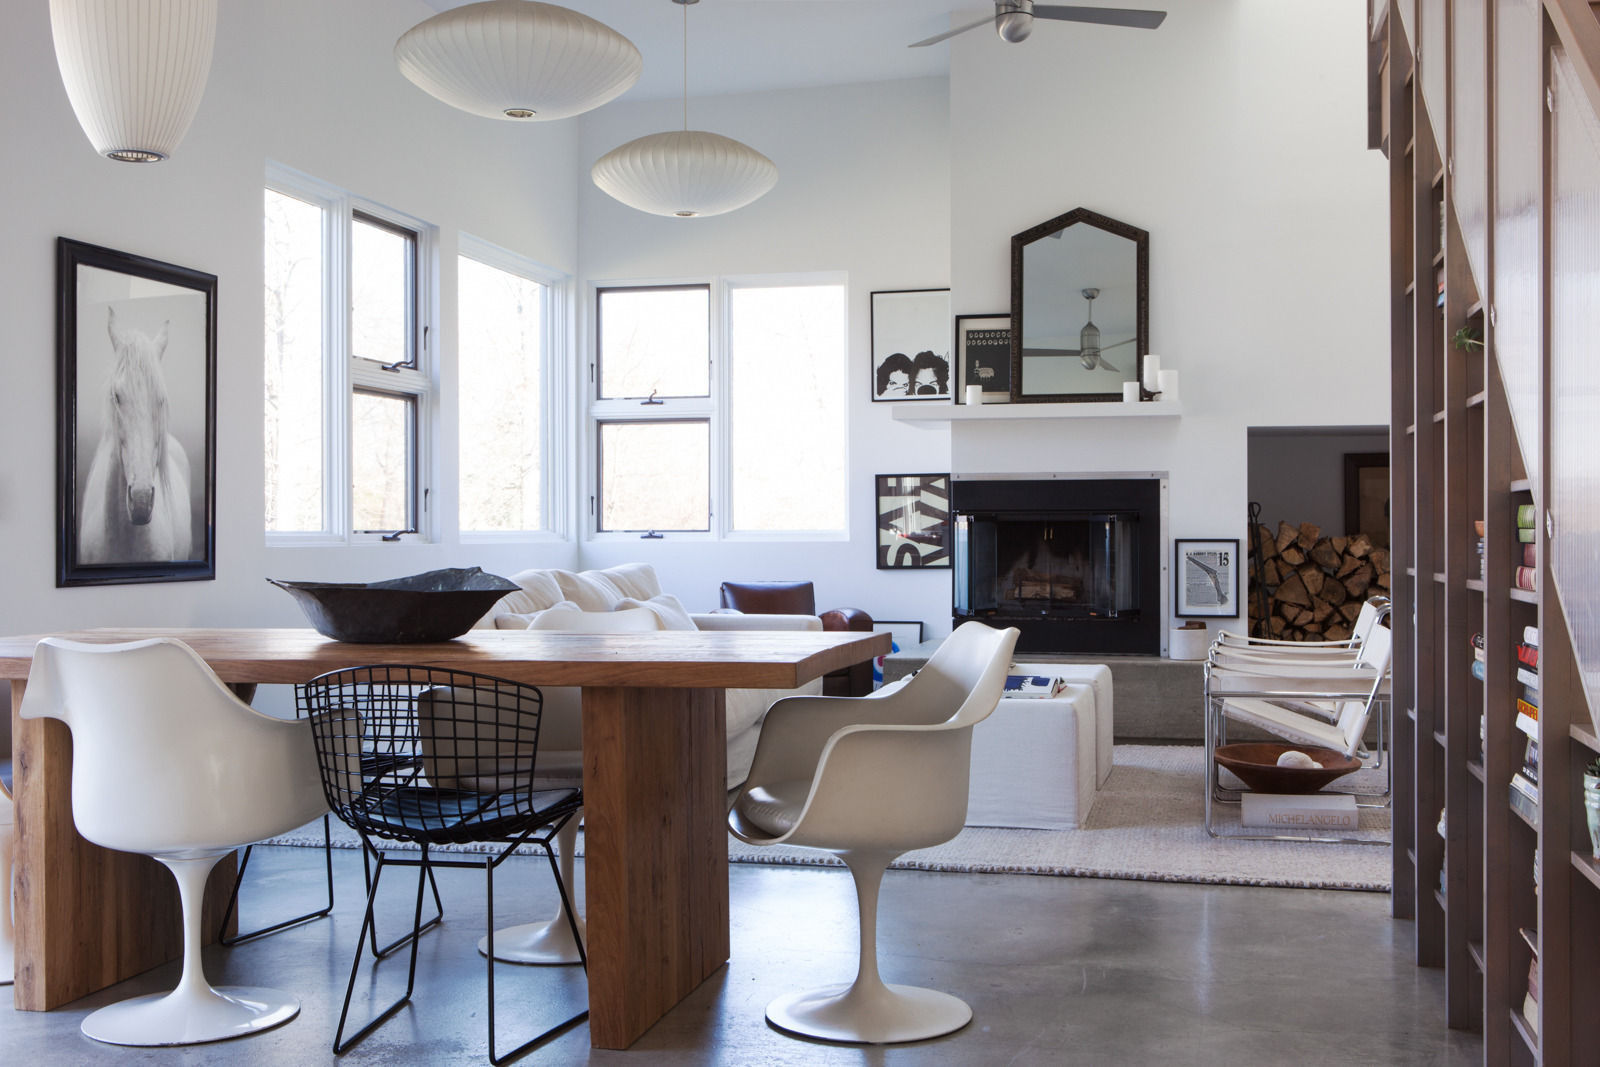 All white and modern design pairs with rustic chic in this living space and dining area by Leanne Ford. A live edge rustic wood table mingles with Midcentury style chairs on a polished concrete floor. #midcentury #rusticdecor #allwhite #bohochic #leanneford